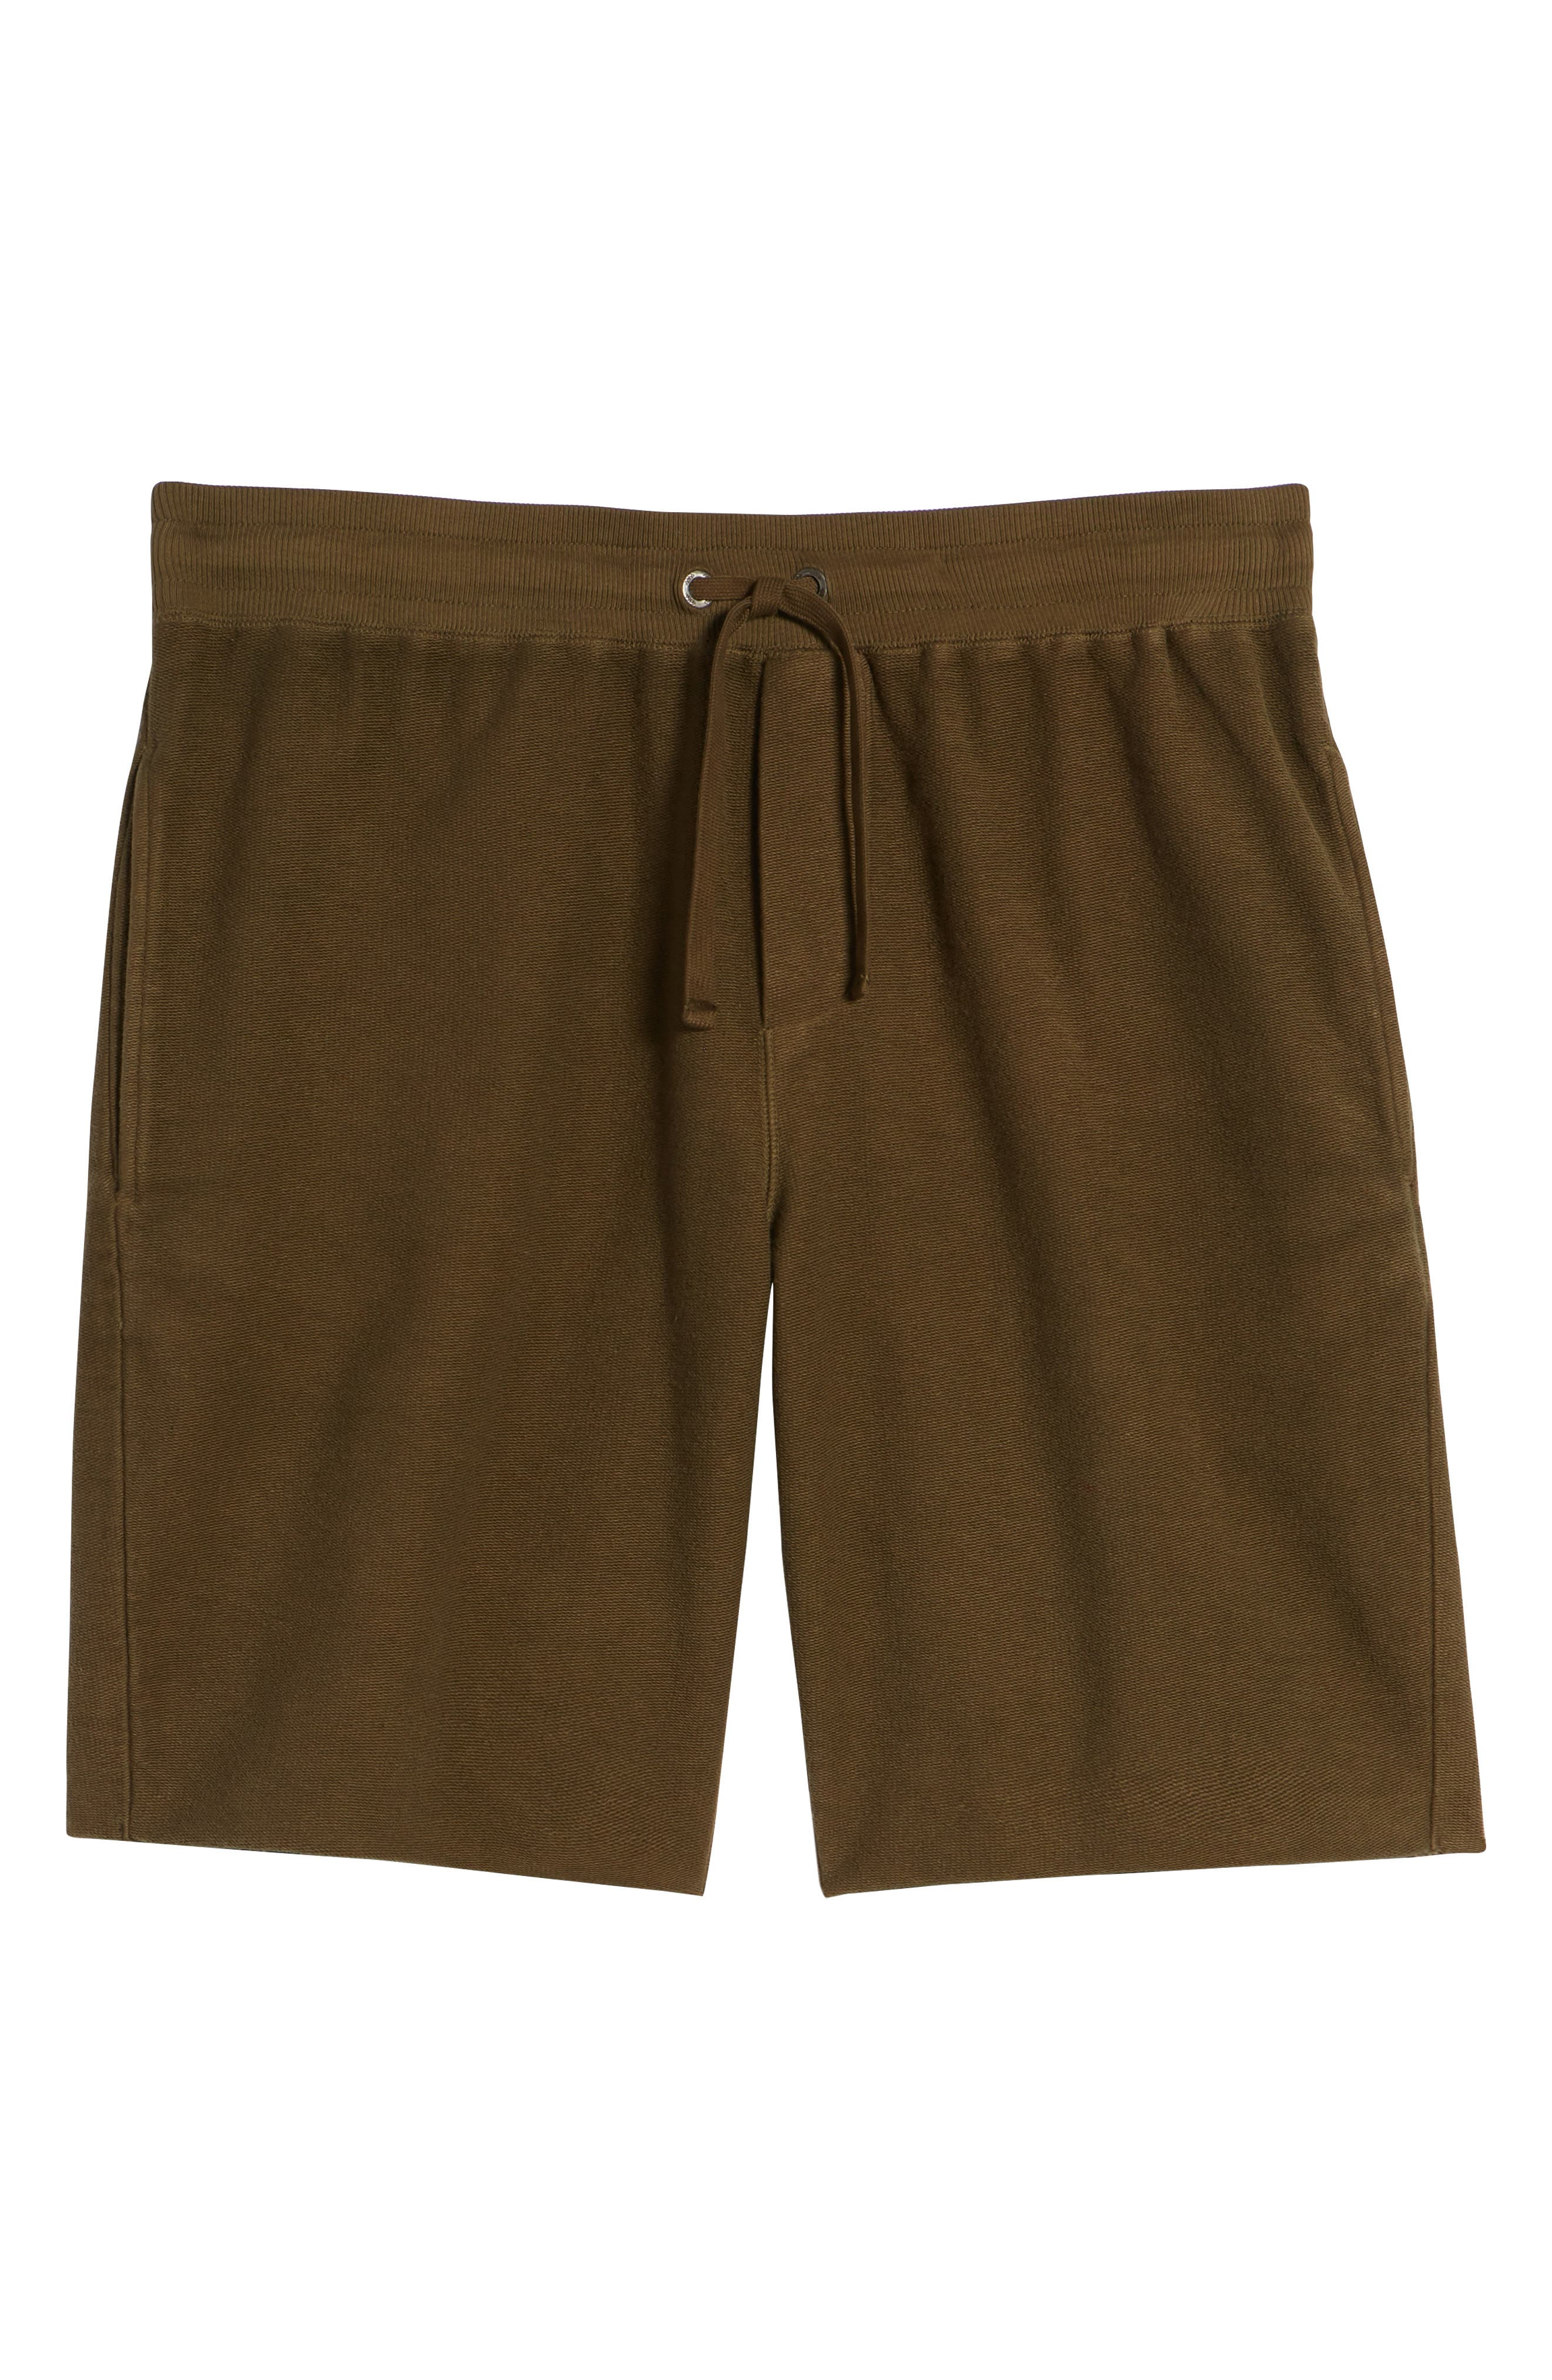 THE RAIL,                             Reverse Terry Shorts,                             Alternate thumbnail 6, color,                             315